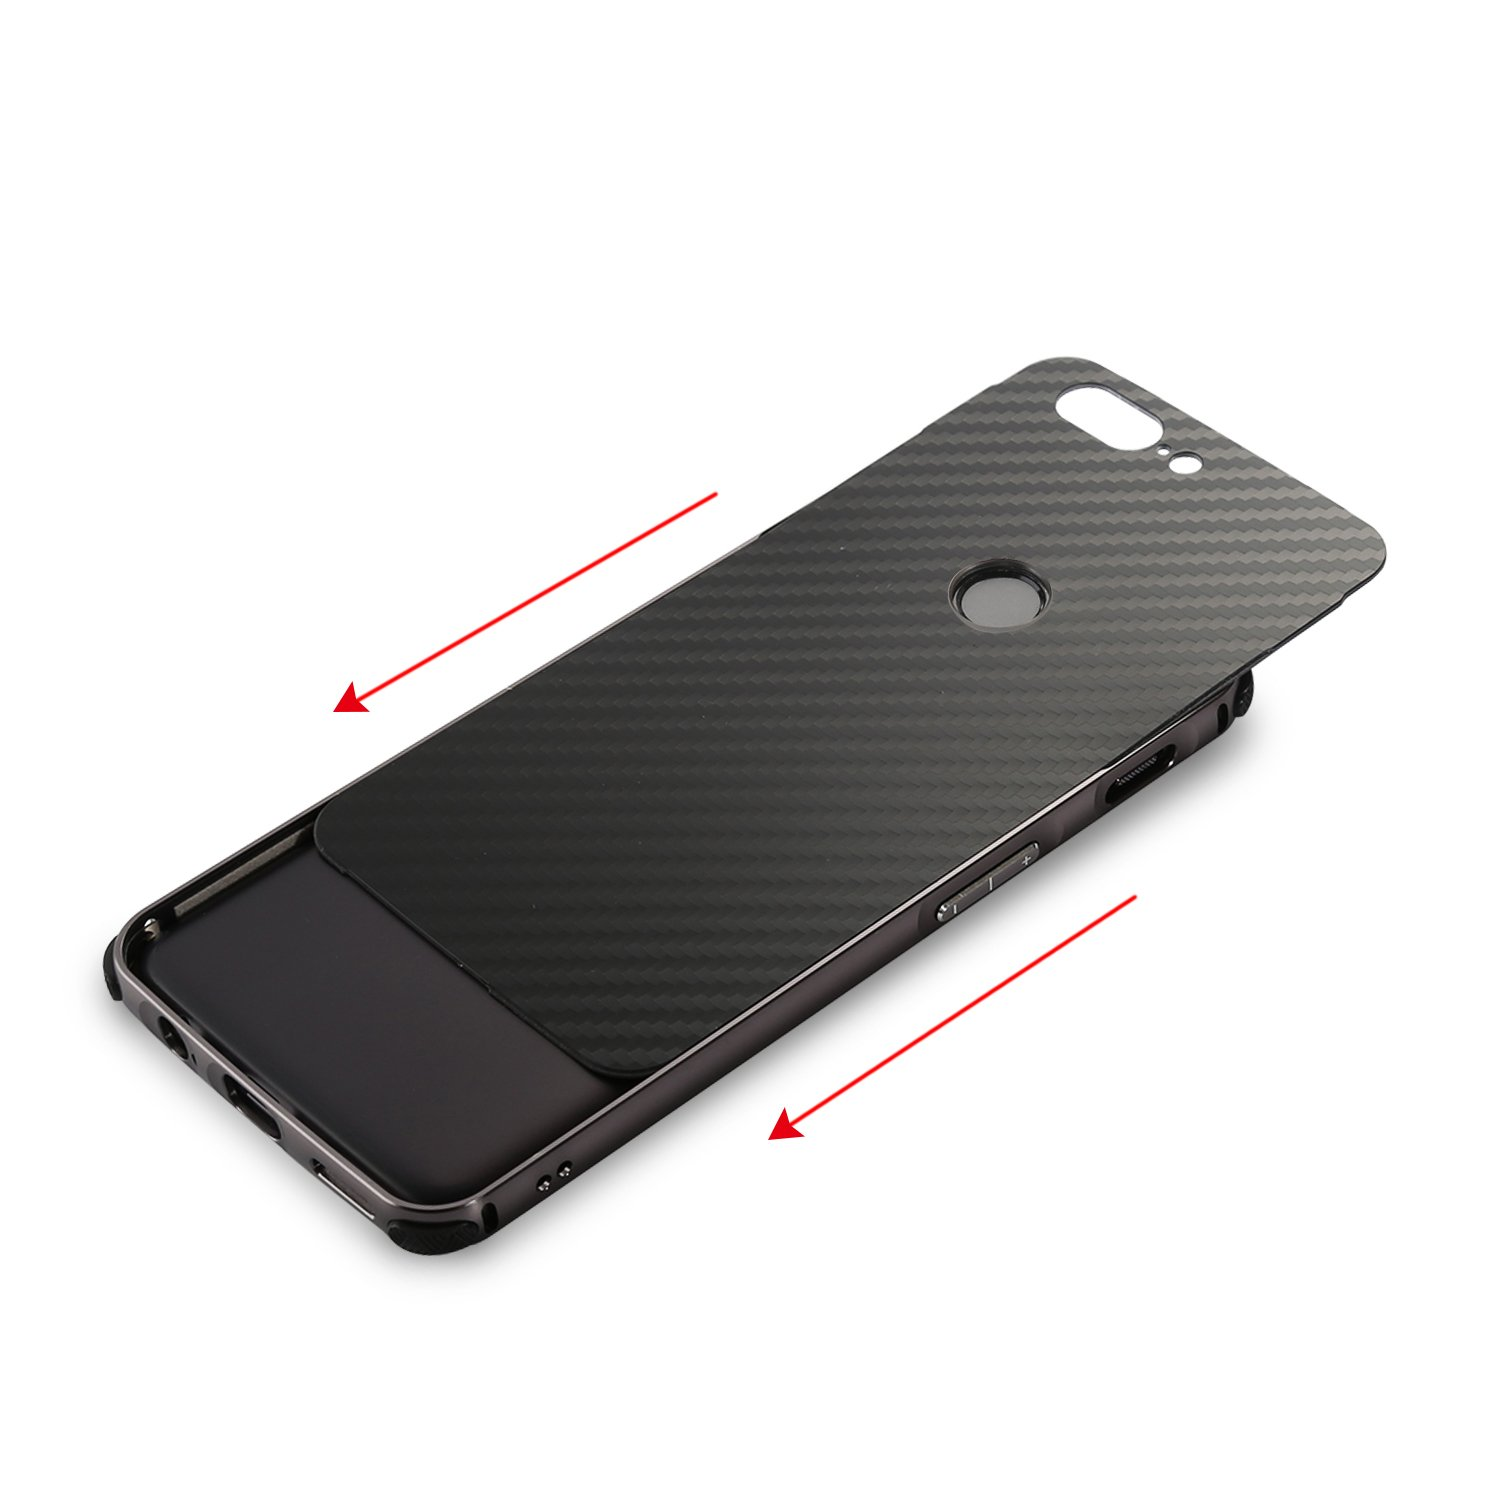 Oneplus 5T Case,DAMONDY Luxury Carbon Fiber Design Ultra thin Imitation Metal Brushed Premium Aluminum Shockproof Protective Bumper Hard Back Case Cover for OnePlus 5T (2017)-Gold by DAMONDY (Image #4)